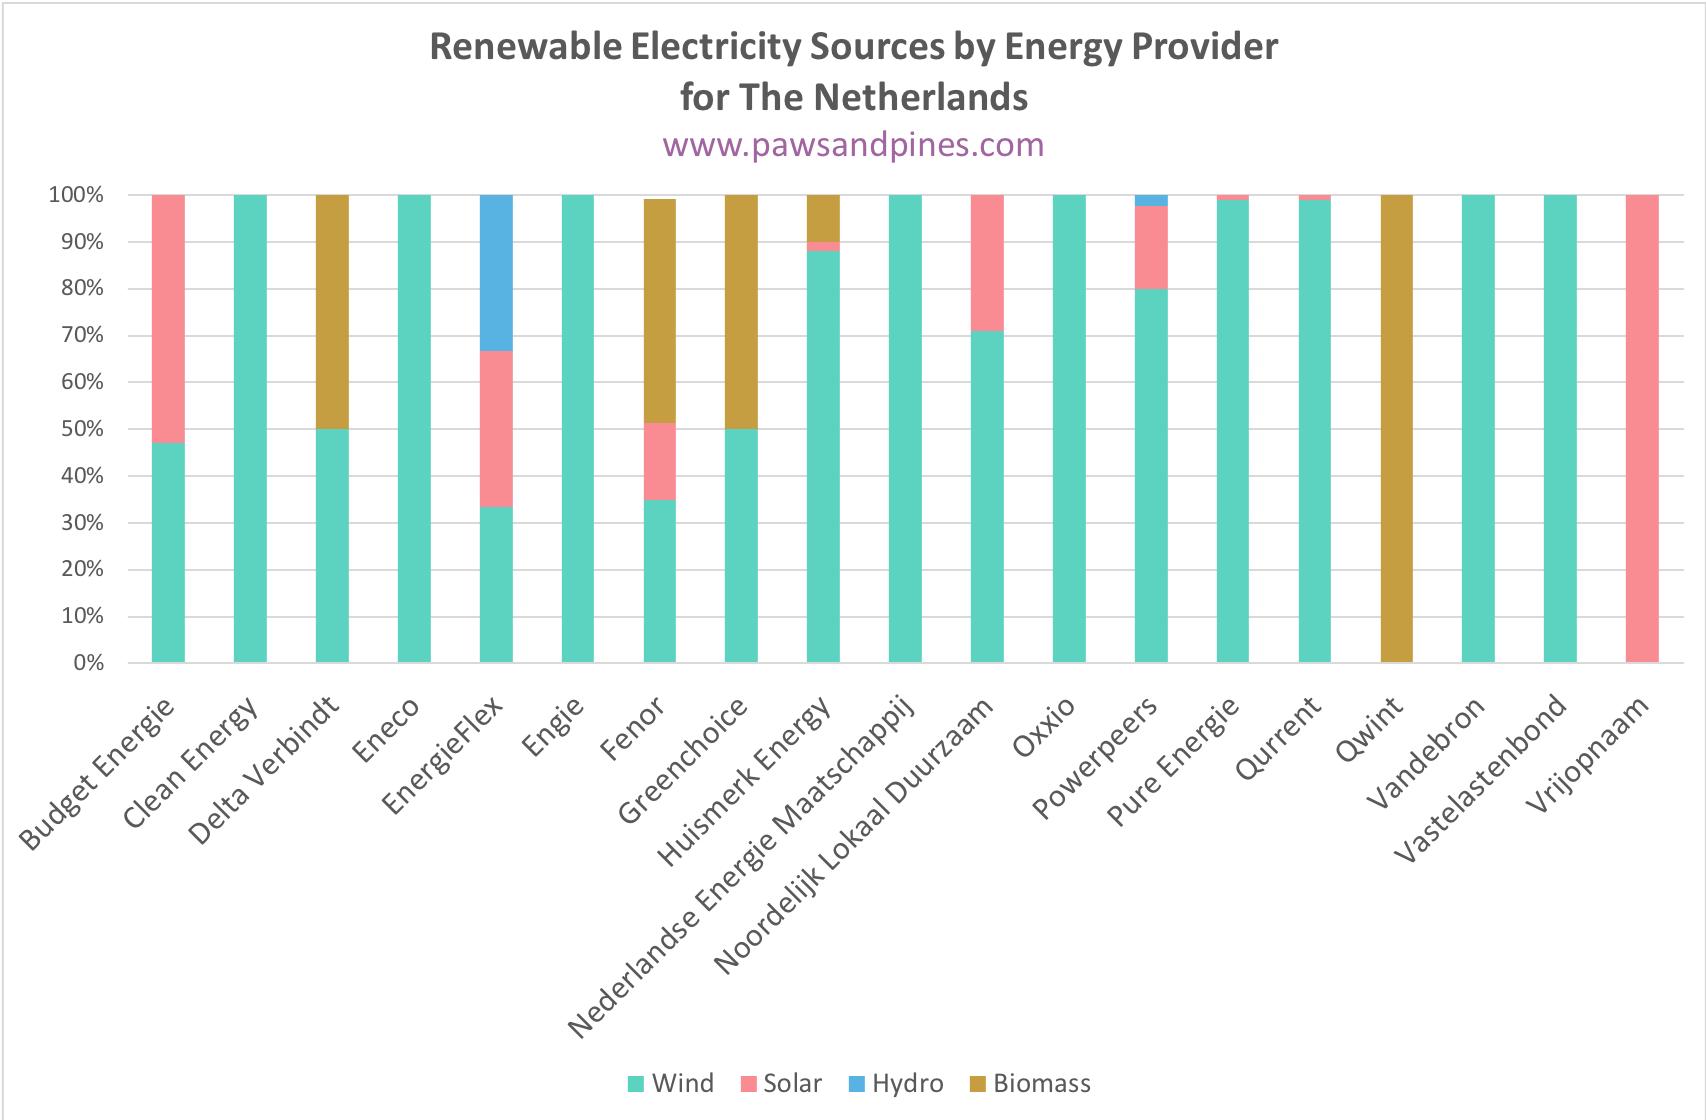 Renewable Electricity Sources by Green Energy Provider in the Netherlands